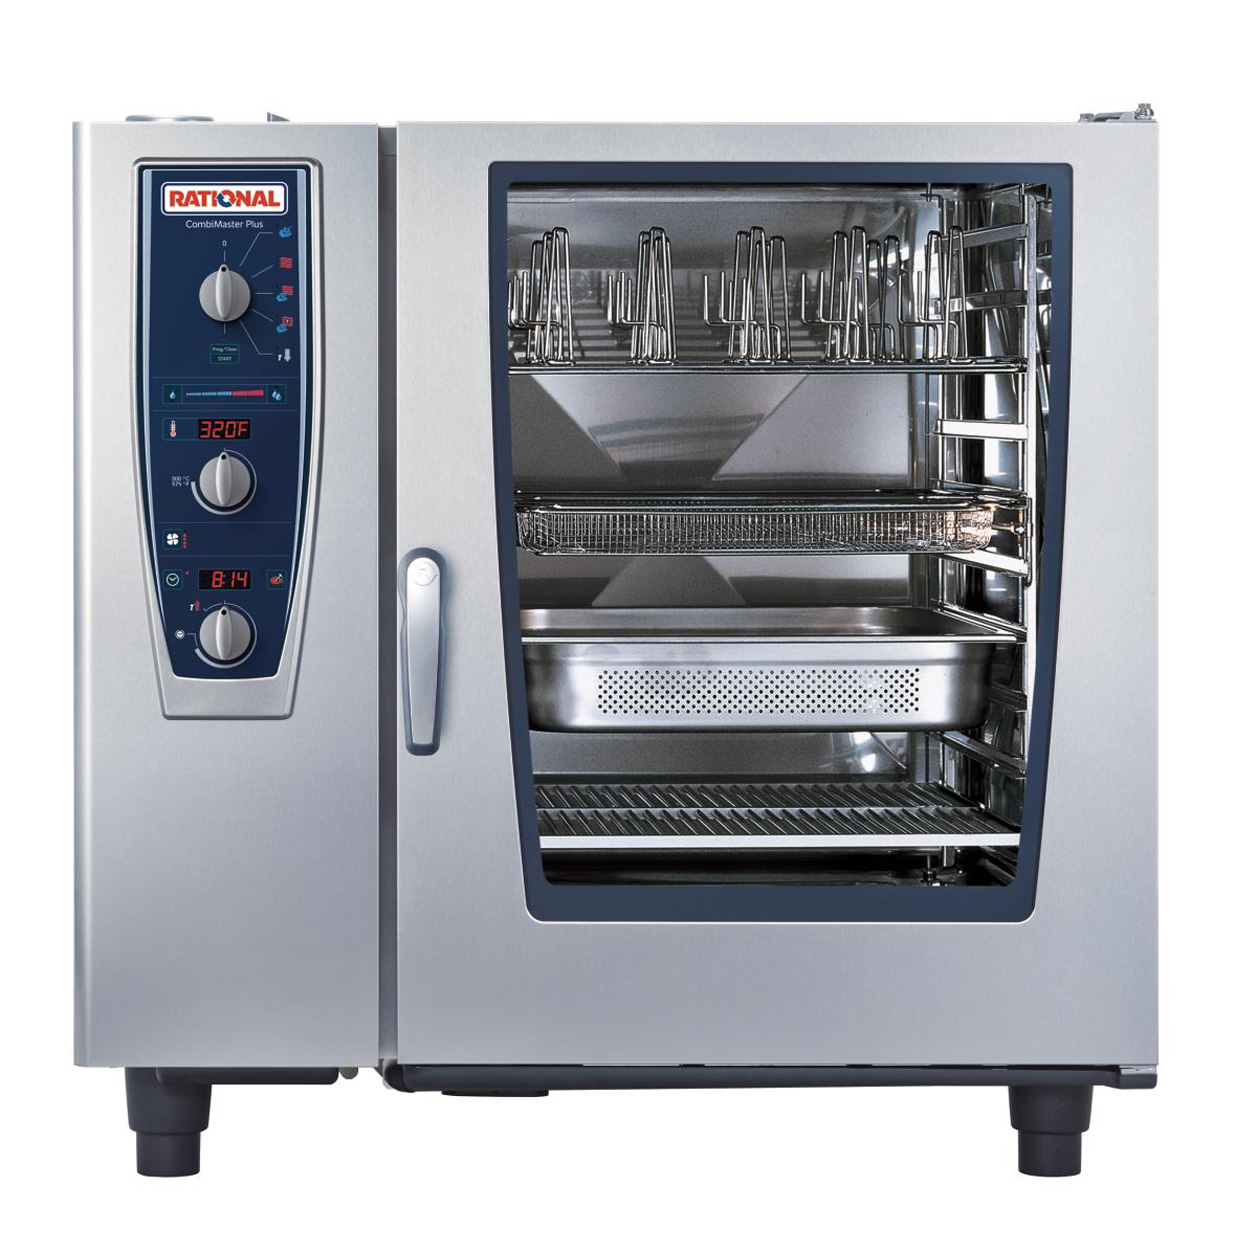 RATIONAL B129106.12.202 combi oven, electric